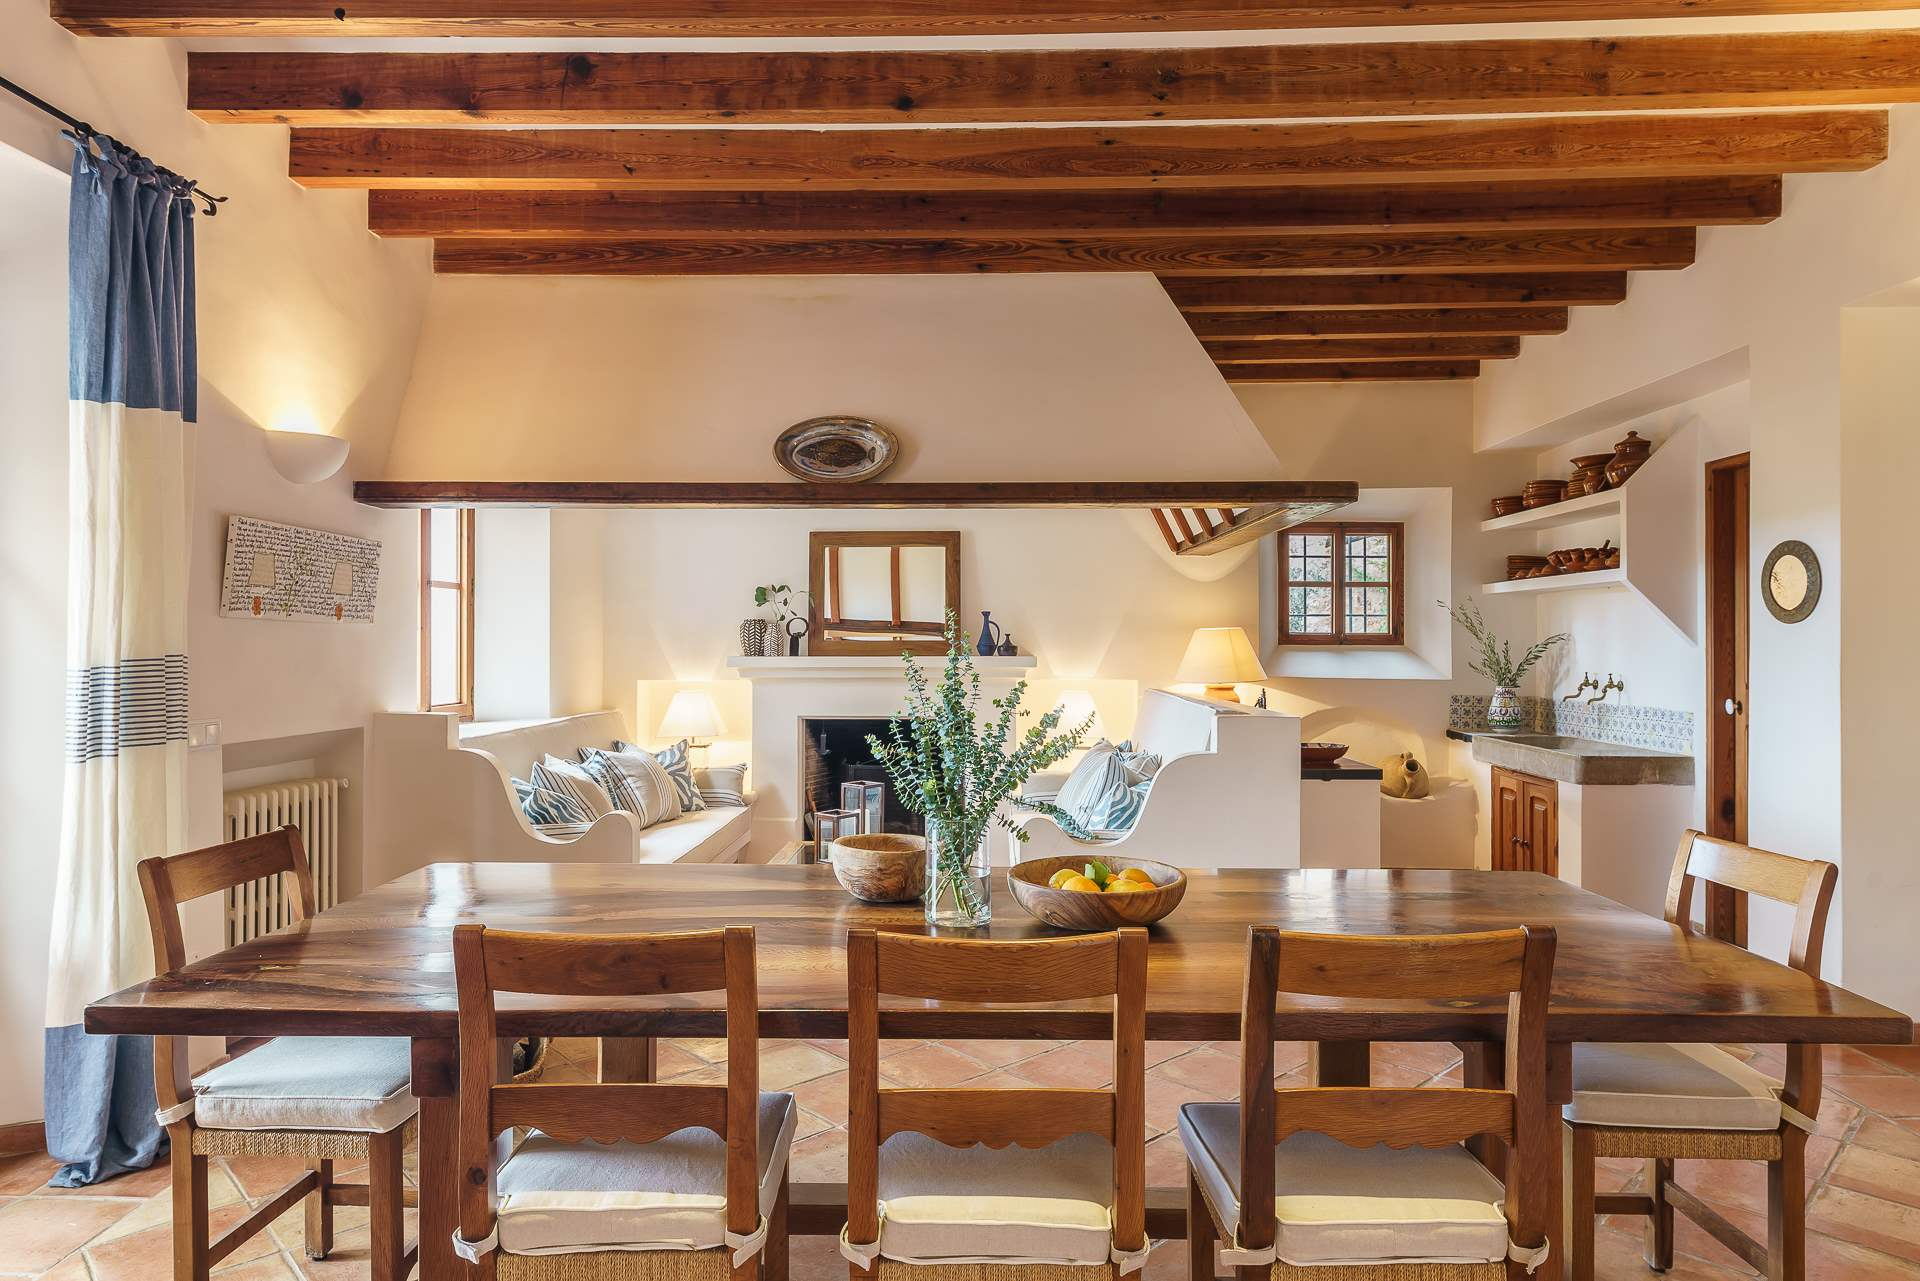 Sa Tanca, 3 Bedroom Rental, 3 bedroom villa in Soller & Deia, Majorca Photo #7